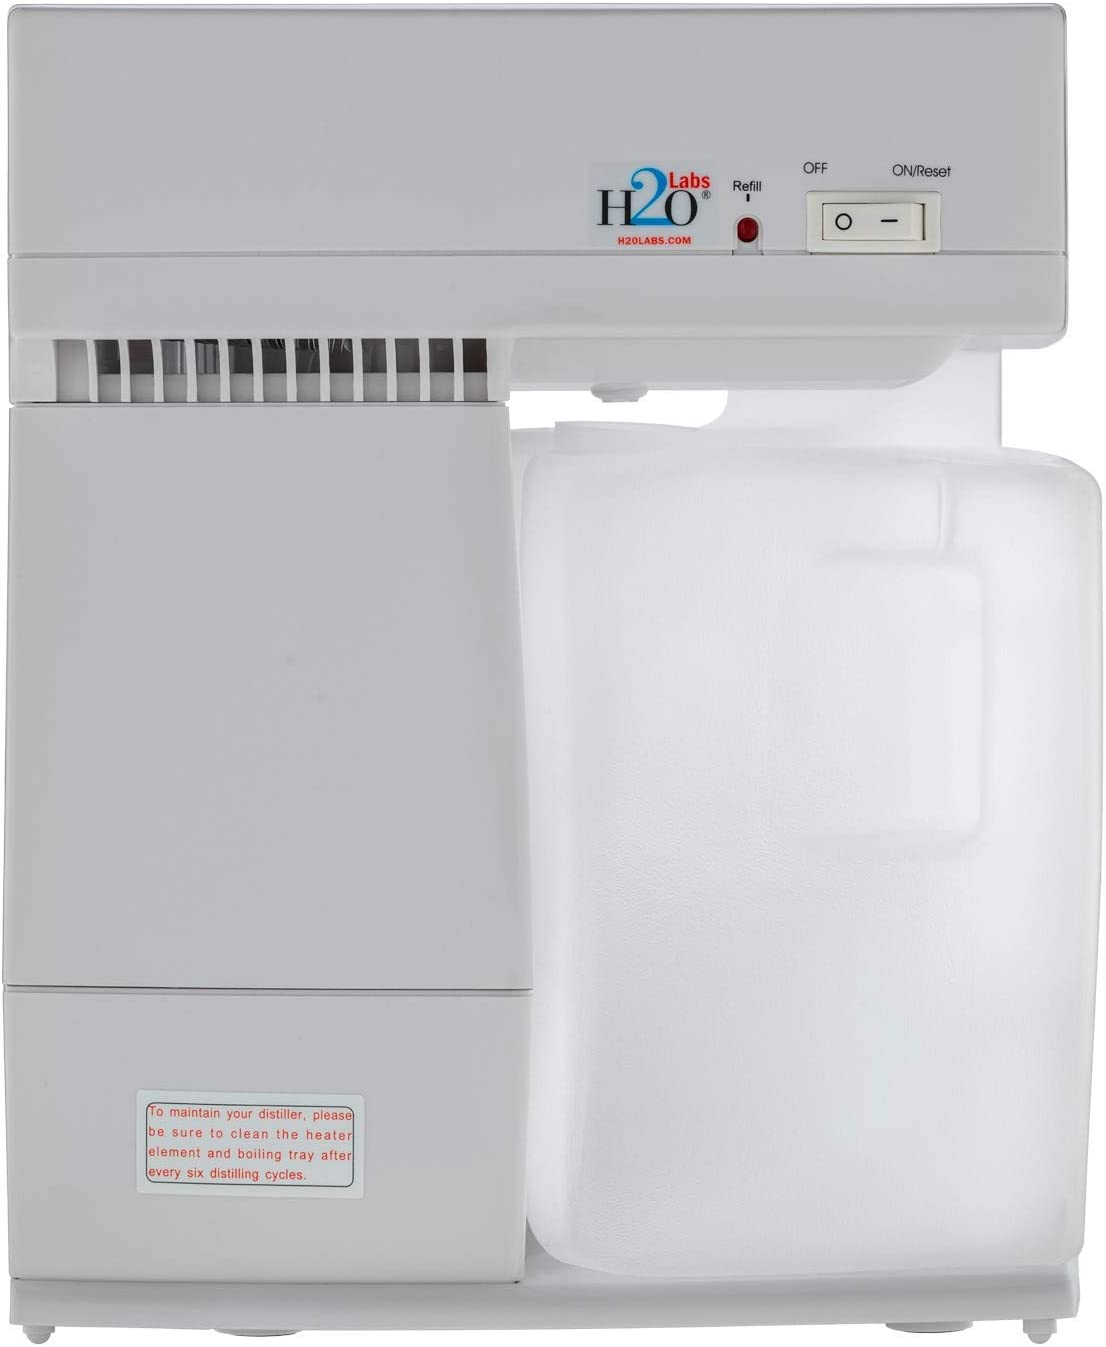 Most Convenient Water Distiller is Re New Indianapolis Mall color with Easy-Fill Lightweight